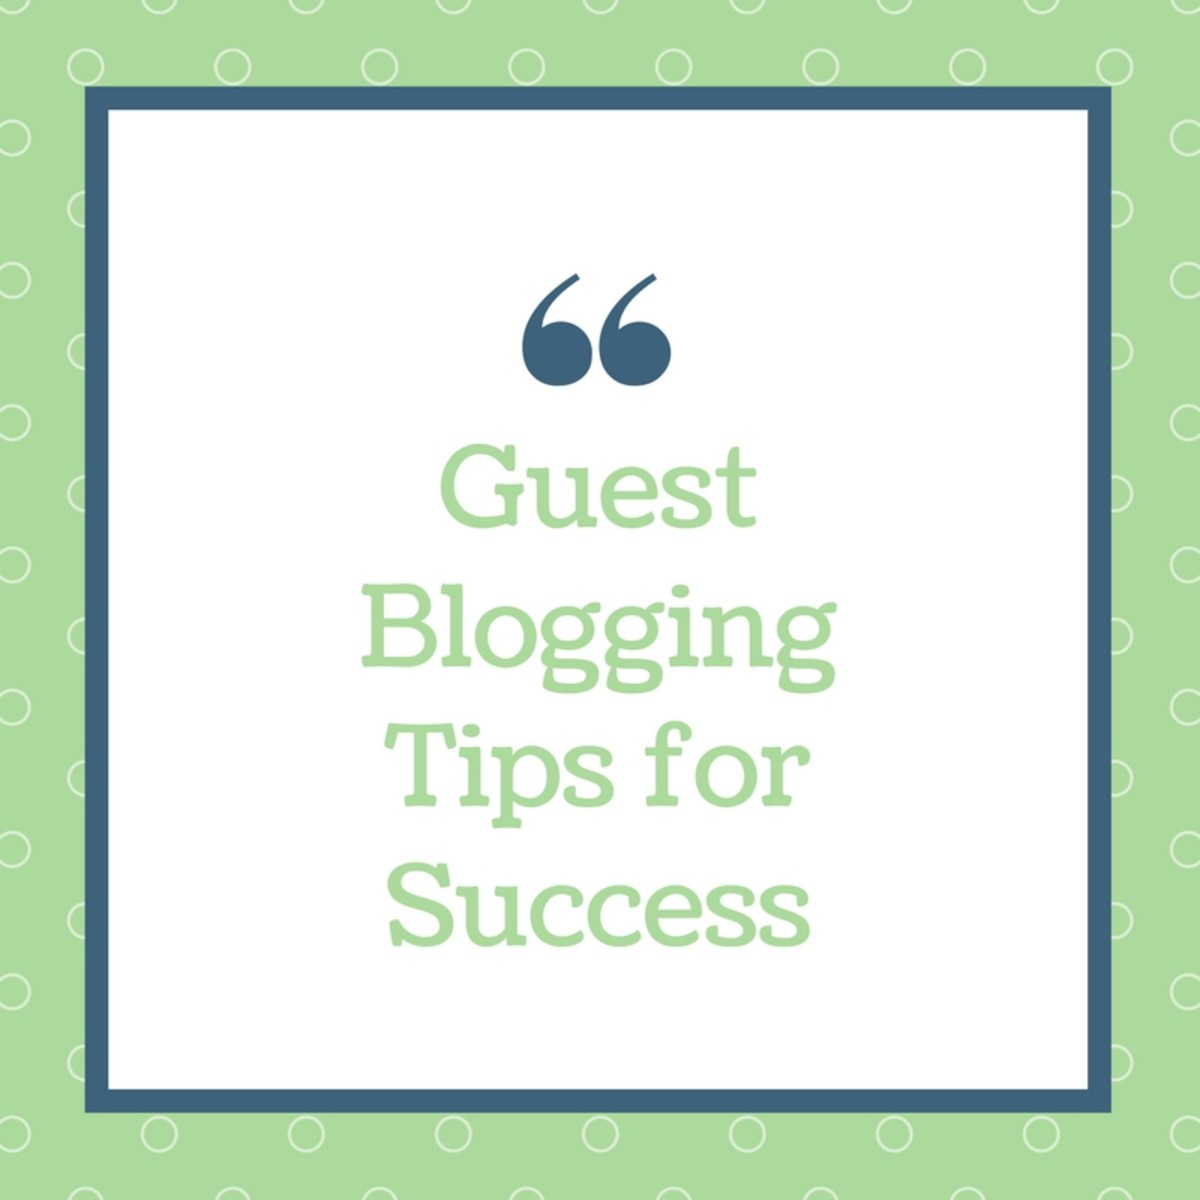 Guest Blogging Tips for Success